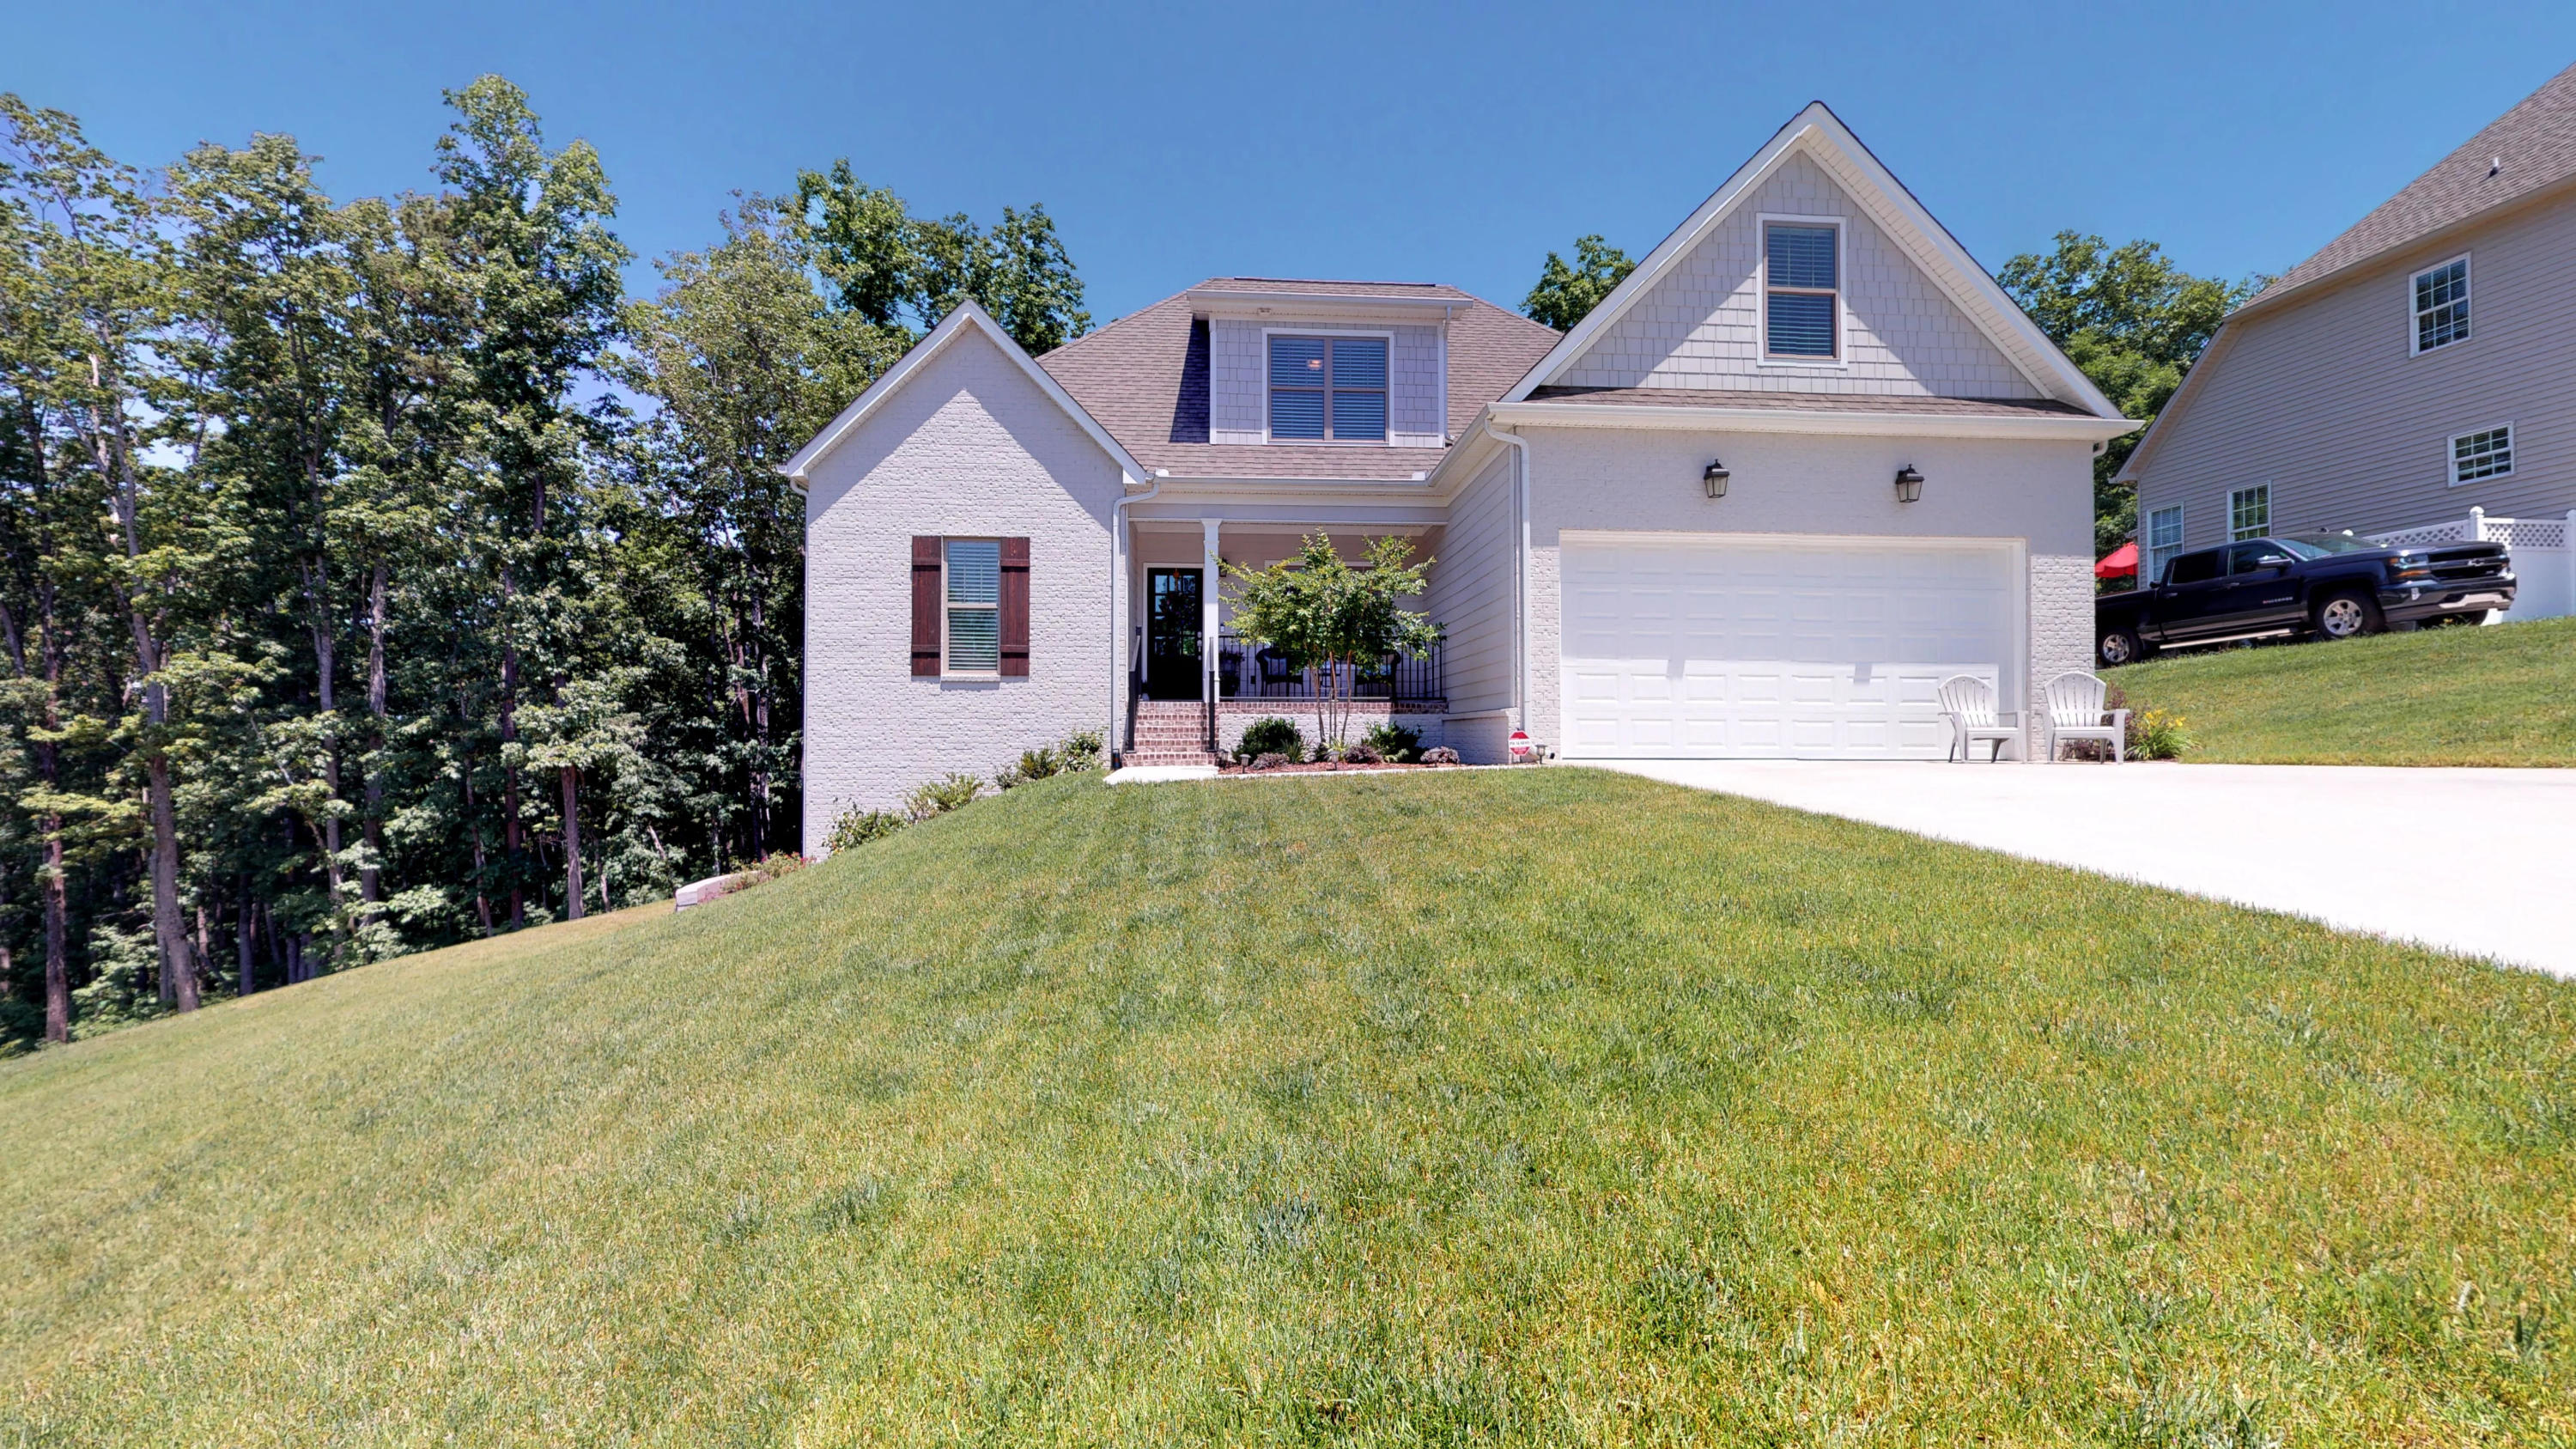 1786 Nw Overdale Dr, Cleveland, TN 37312